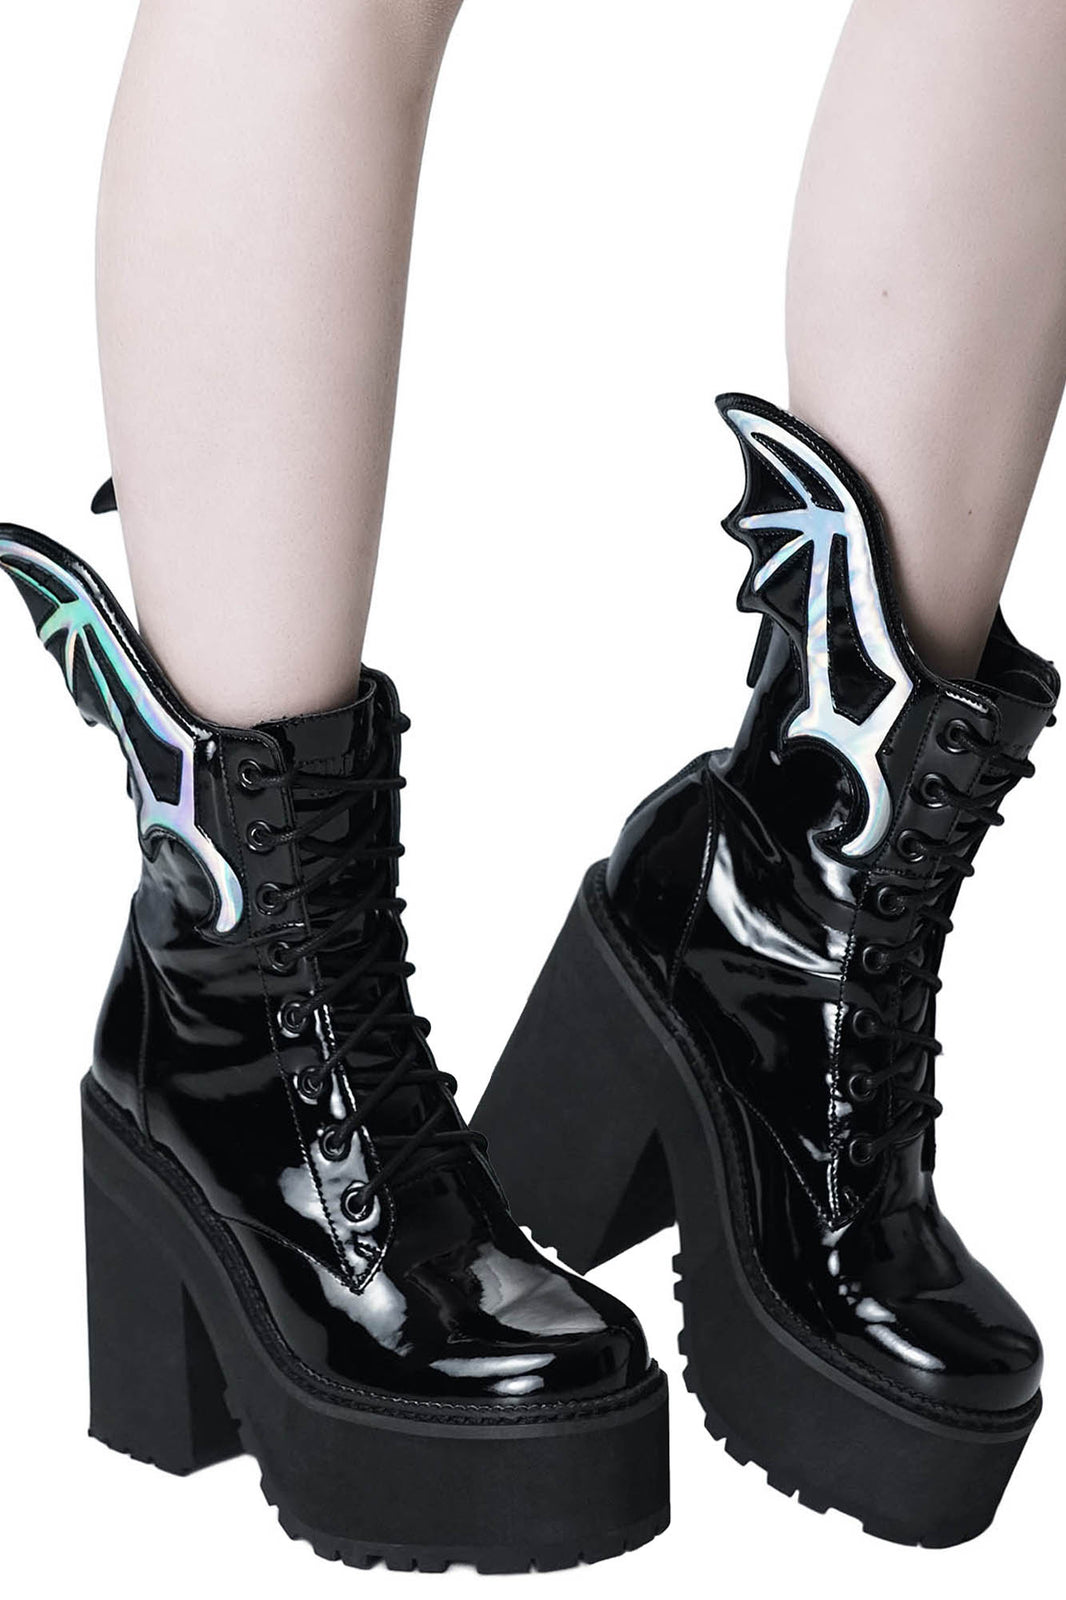 Rave To The Grave Boots